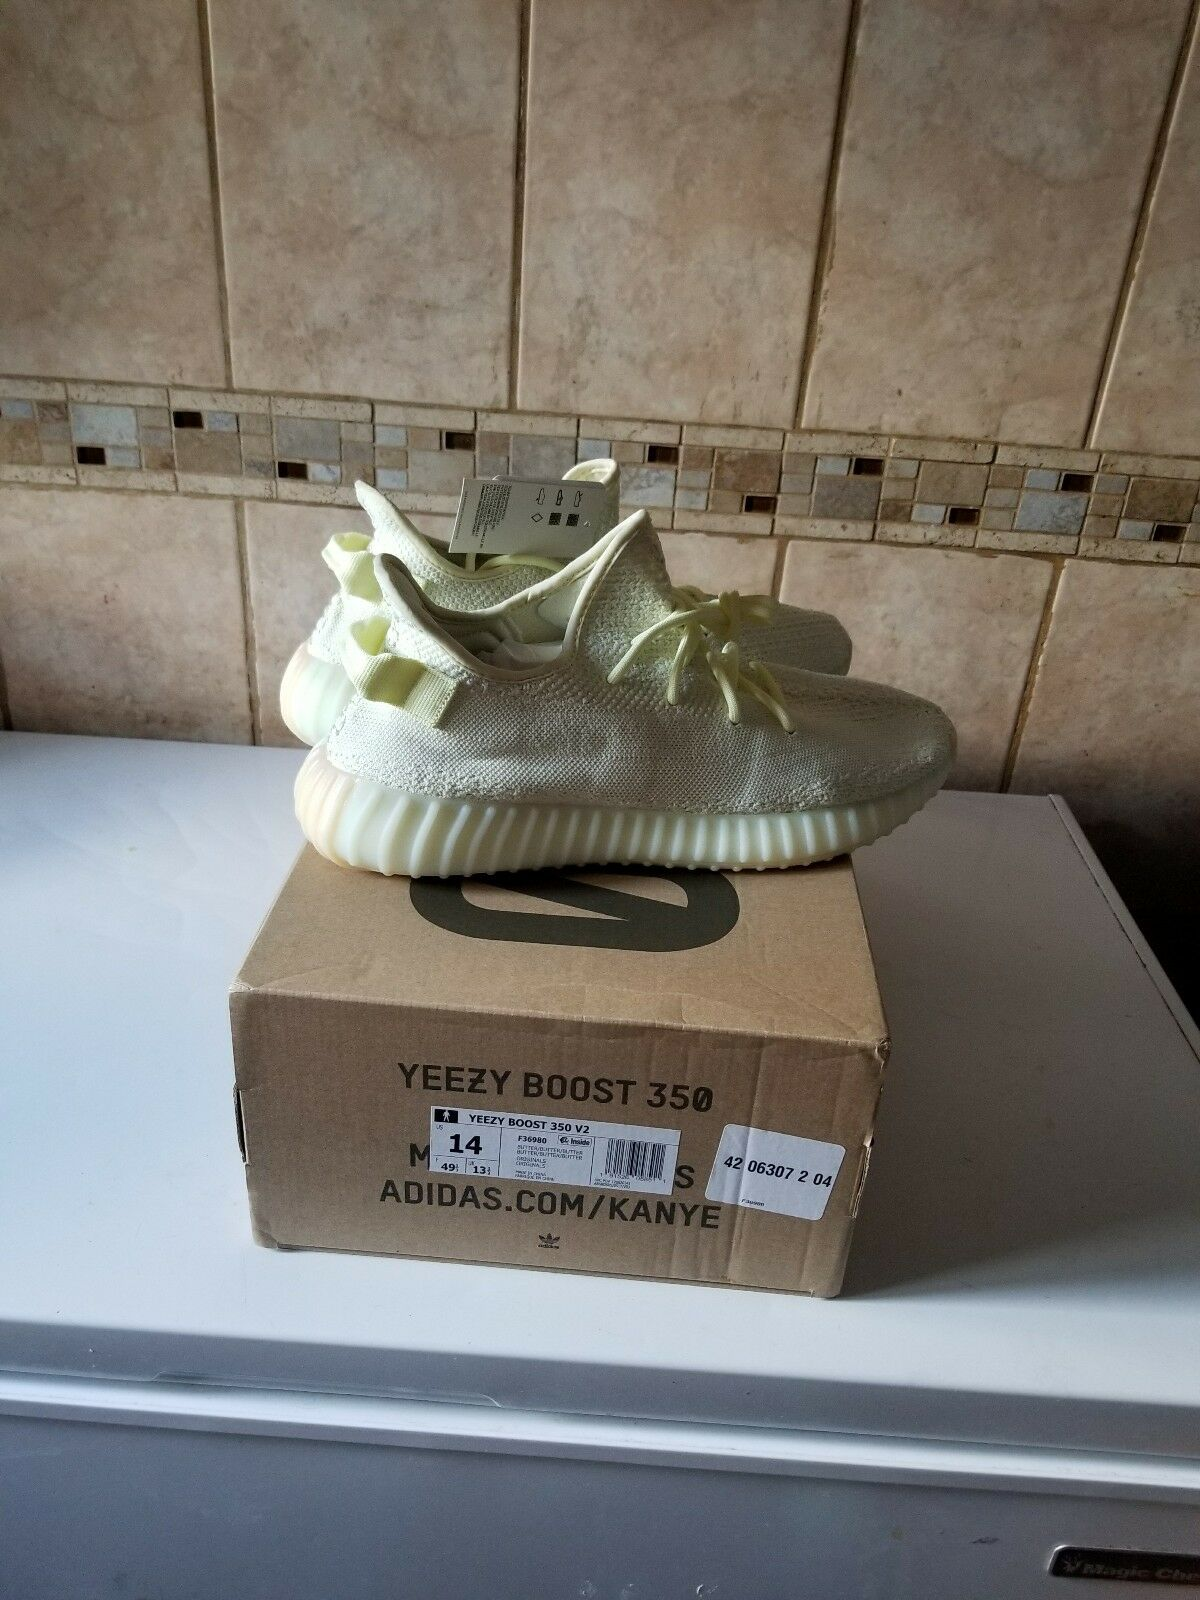 Yeezy Boost 350 v2 Butter Guaranteed sz 14 1000% Authentic Guaranteed Butter 11f16f